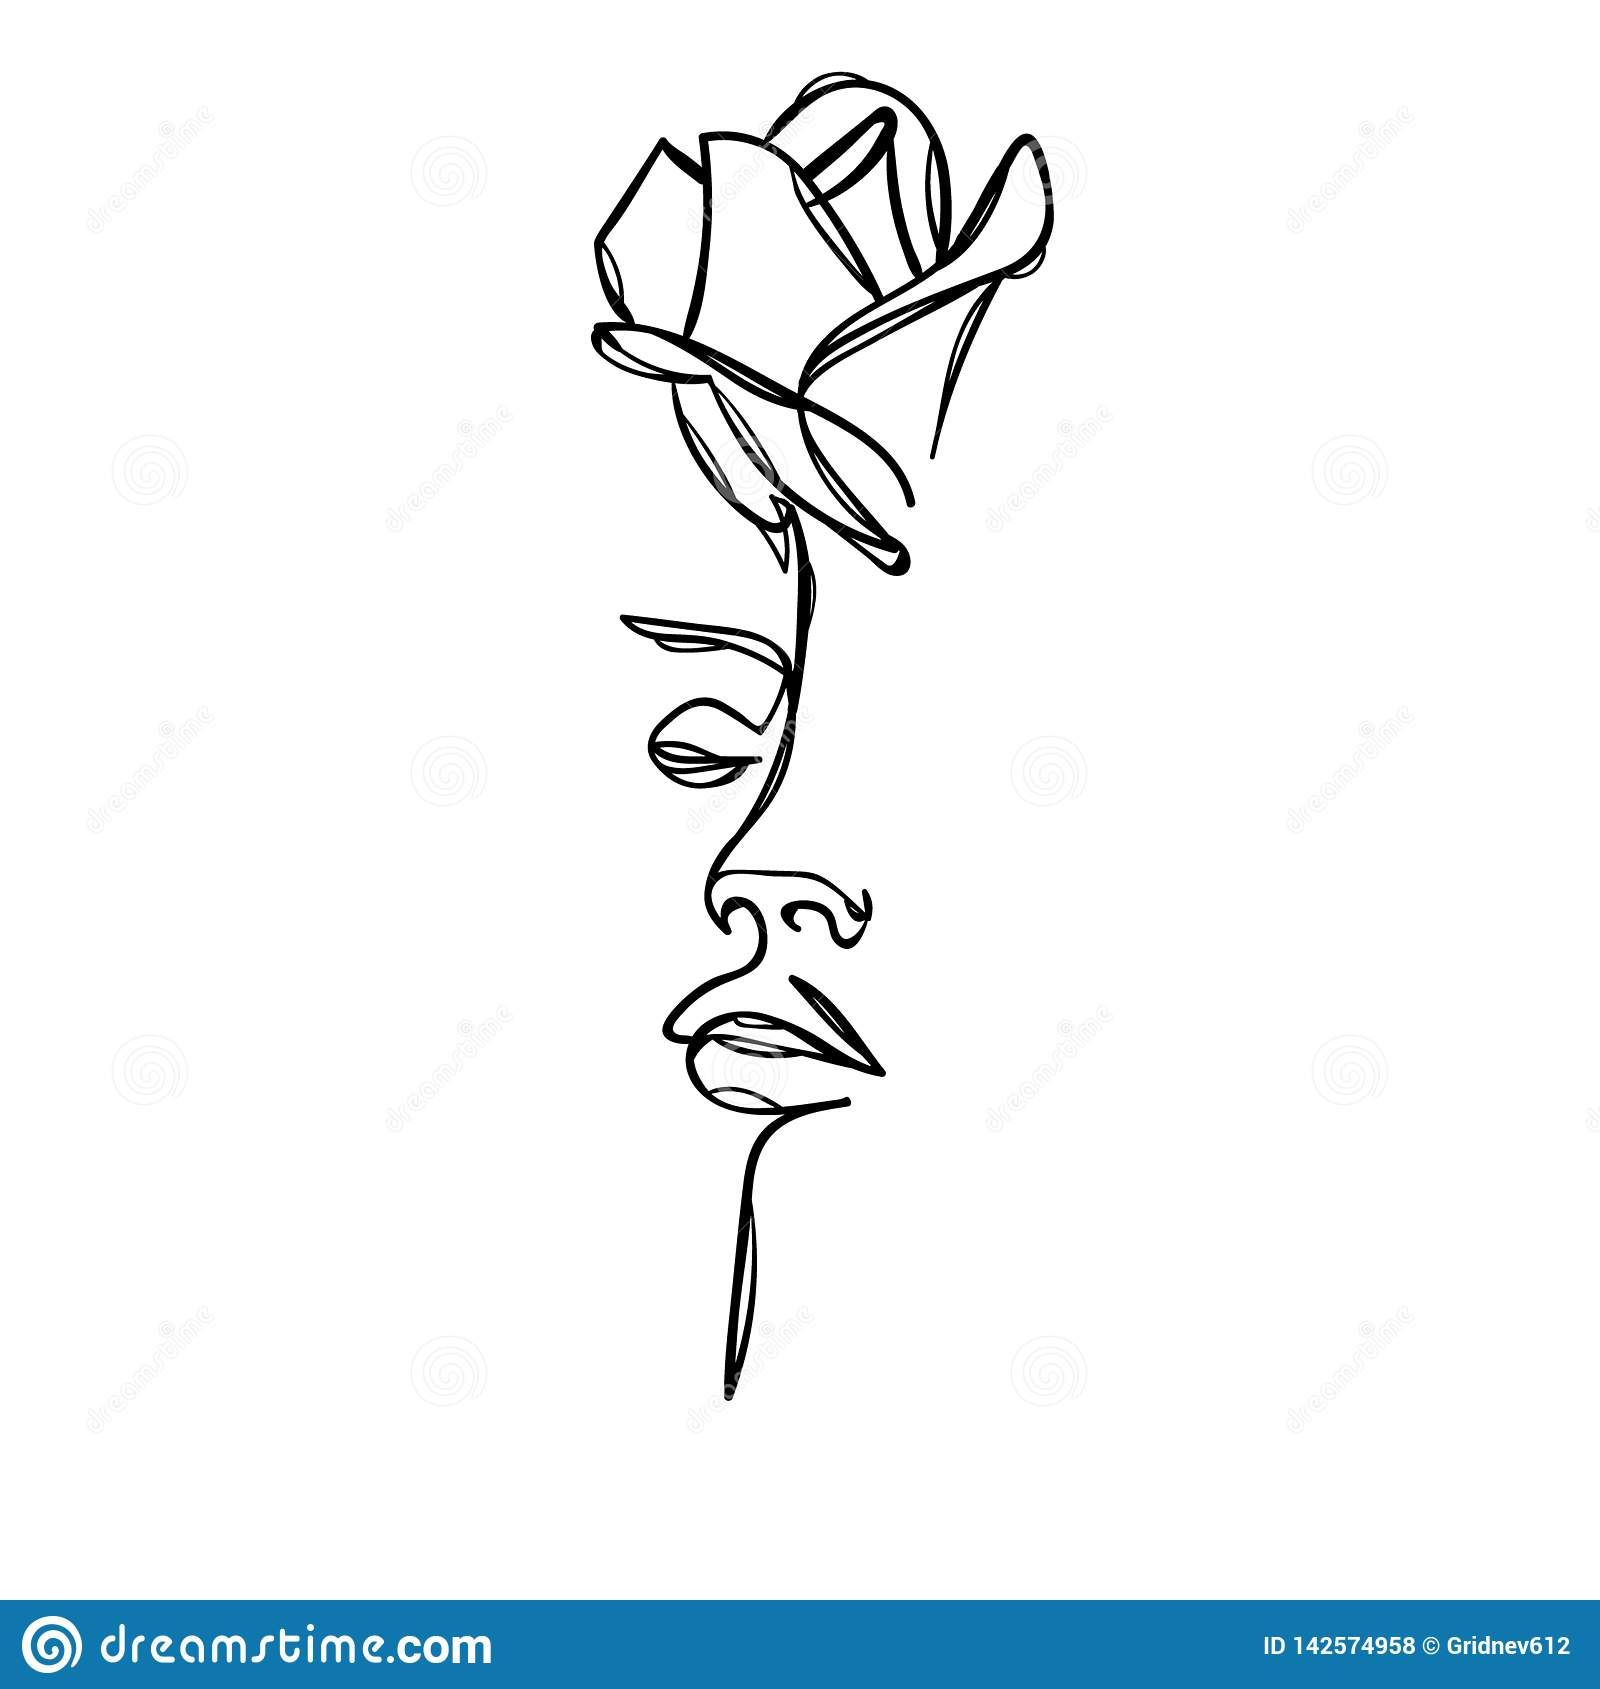 Woman Face With Rose Flower. Continuous Line Drawing. Vector Illustration Stock Vector - Illustration of head, cute: 142574958